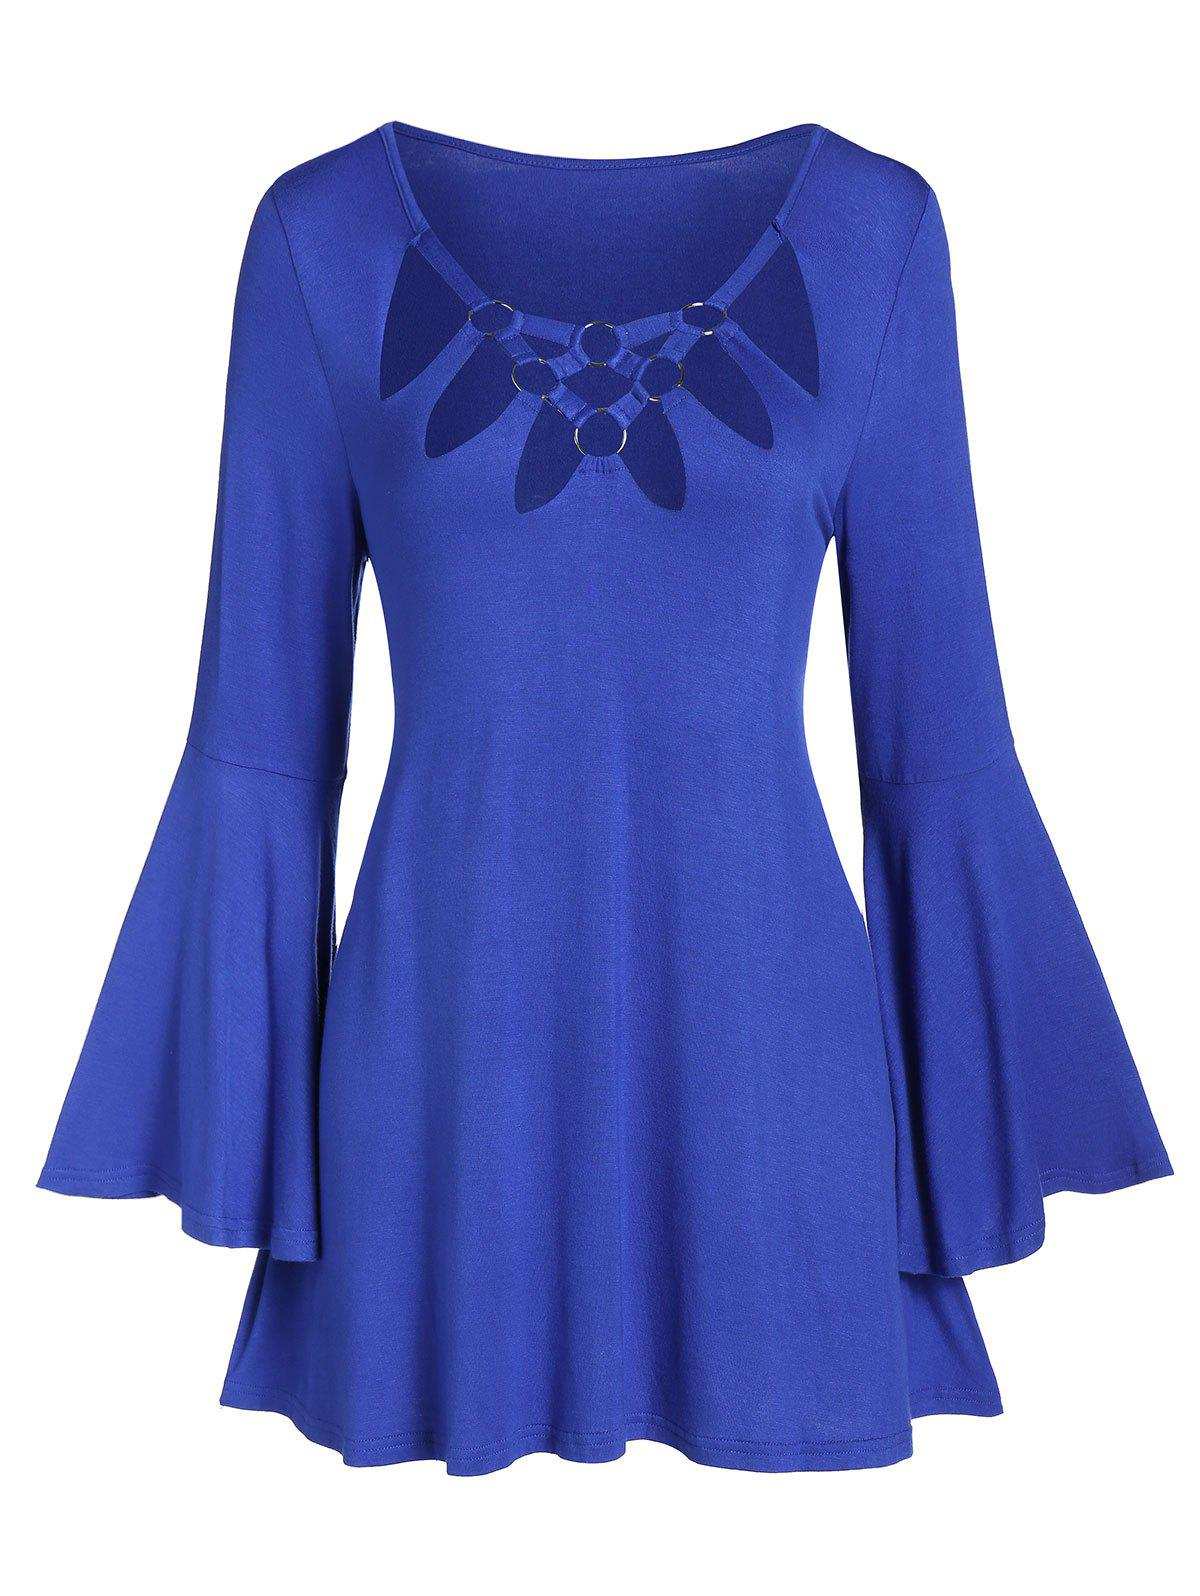 Discount O-ring Hollow Out Bell Sleeve Tunic Tee